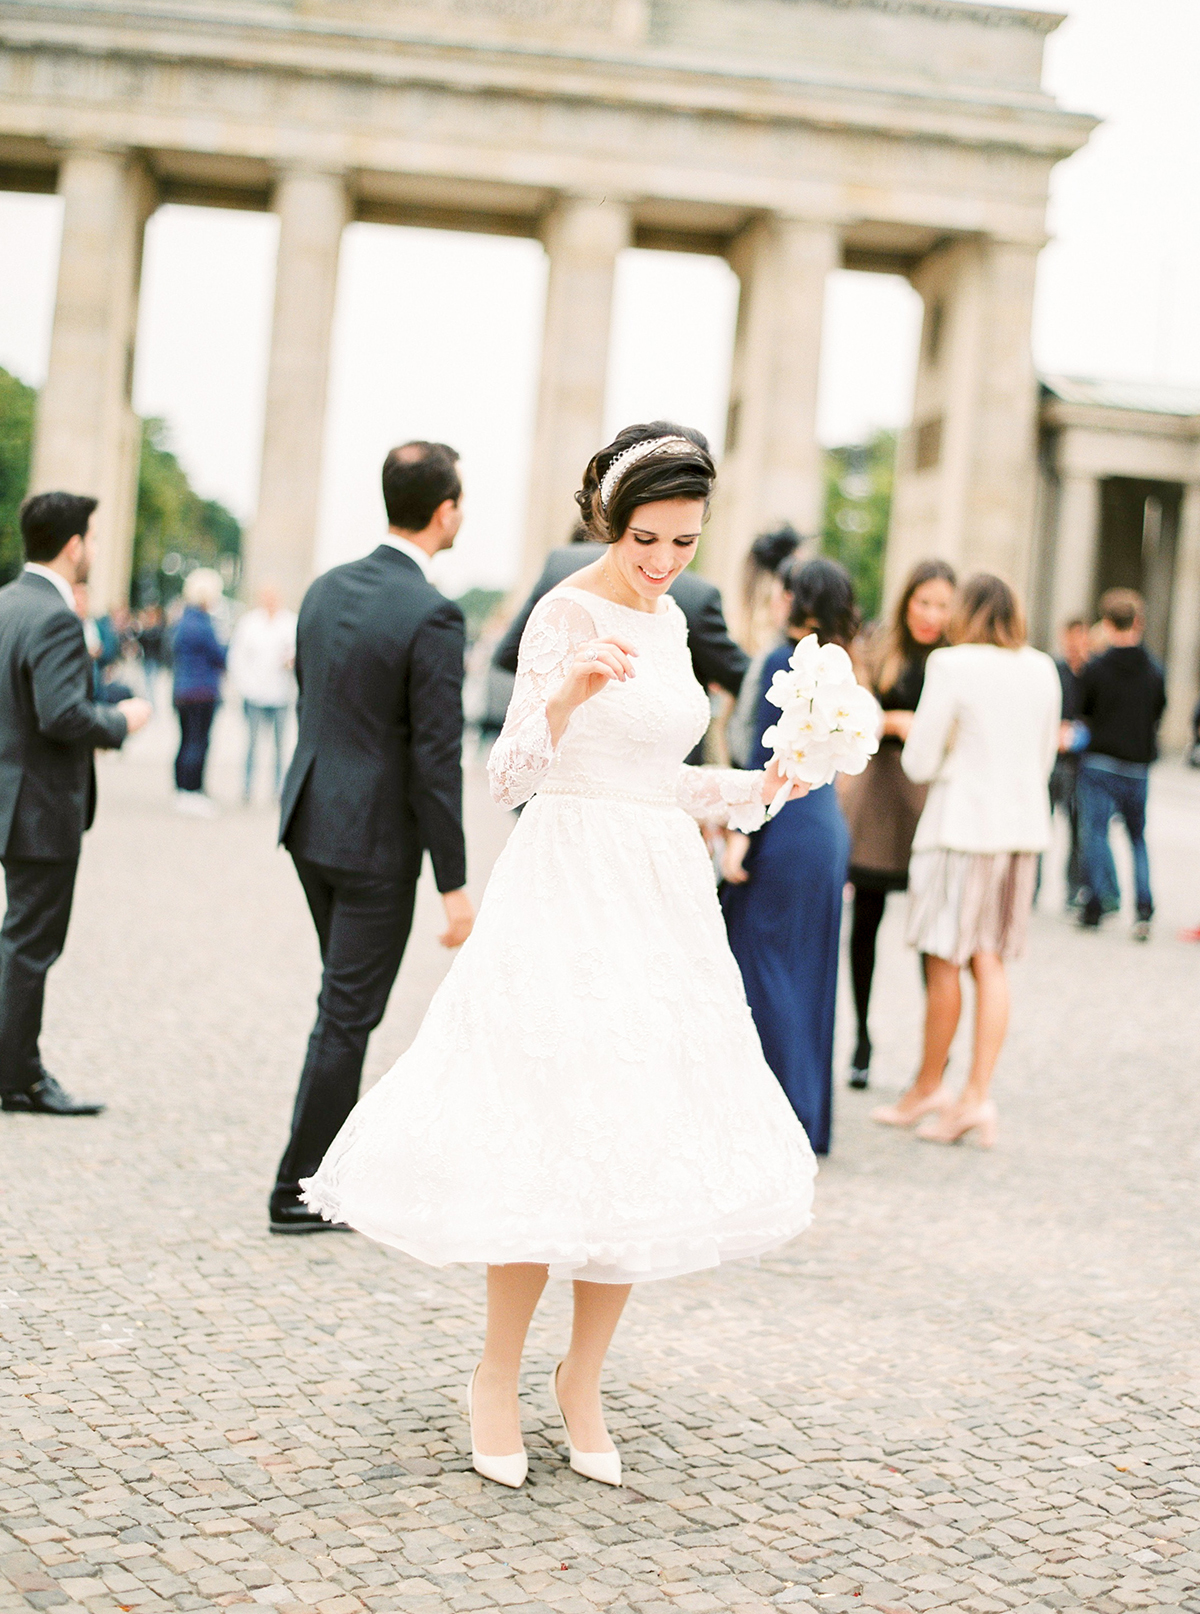 Bride at Brandenburger Tor in Berlin, Germany